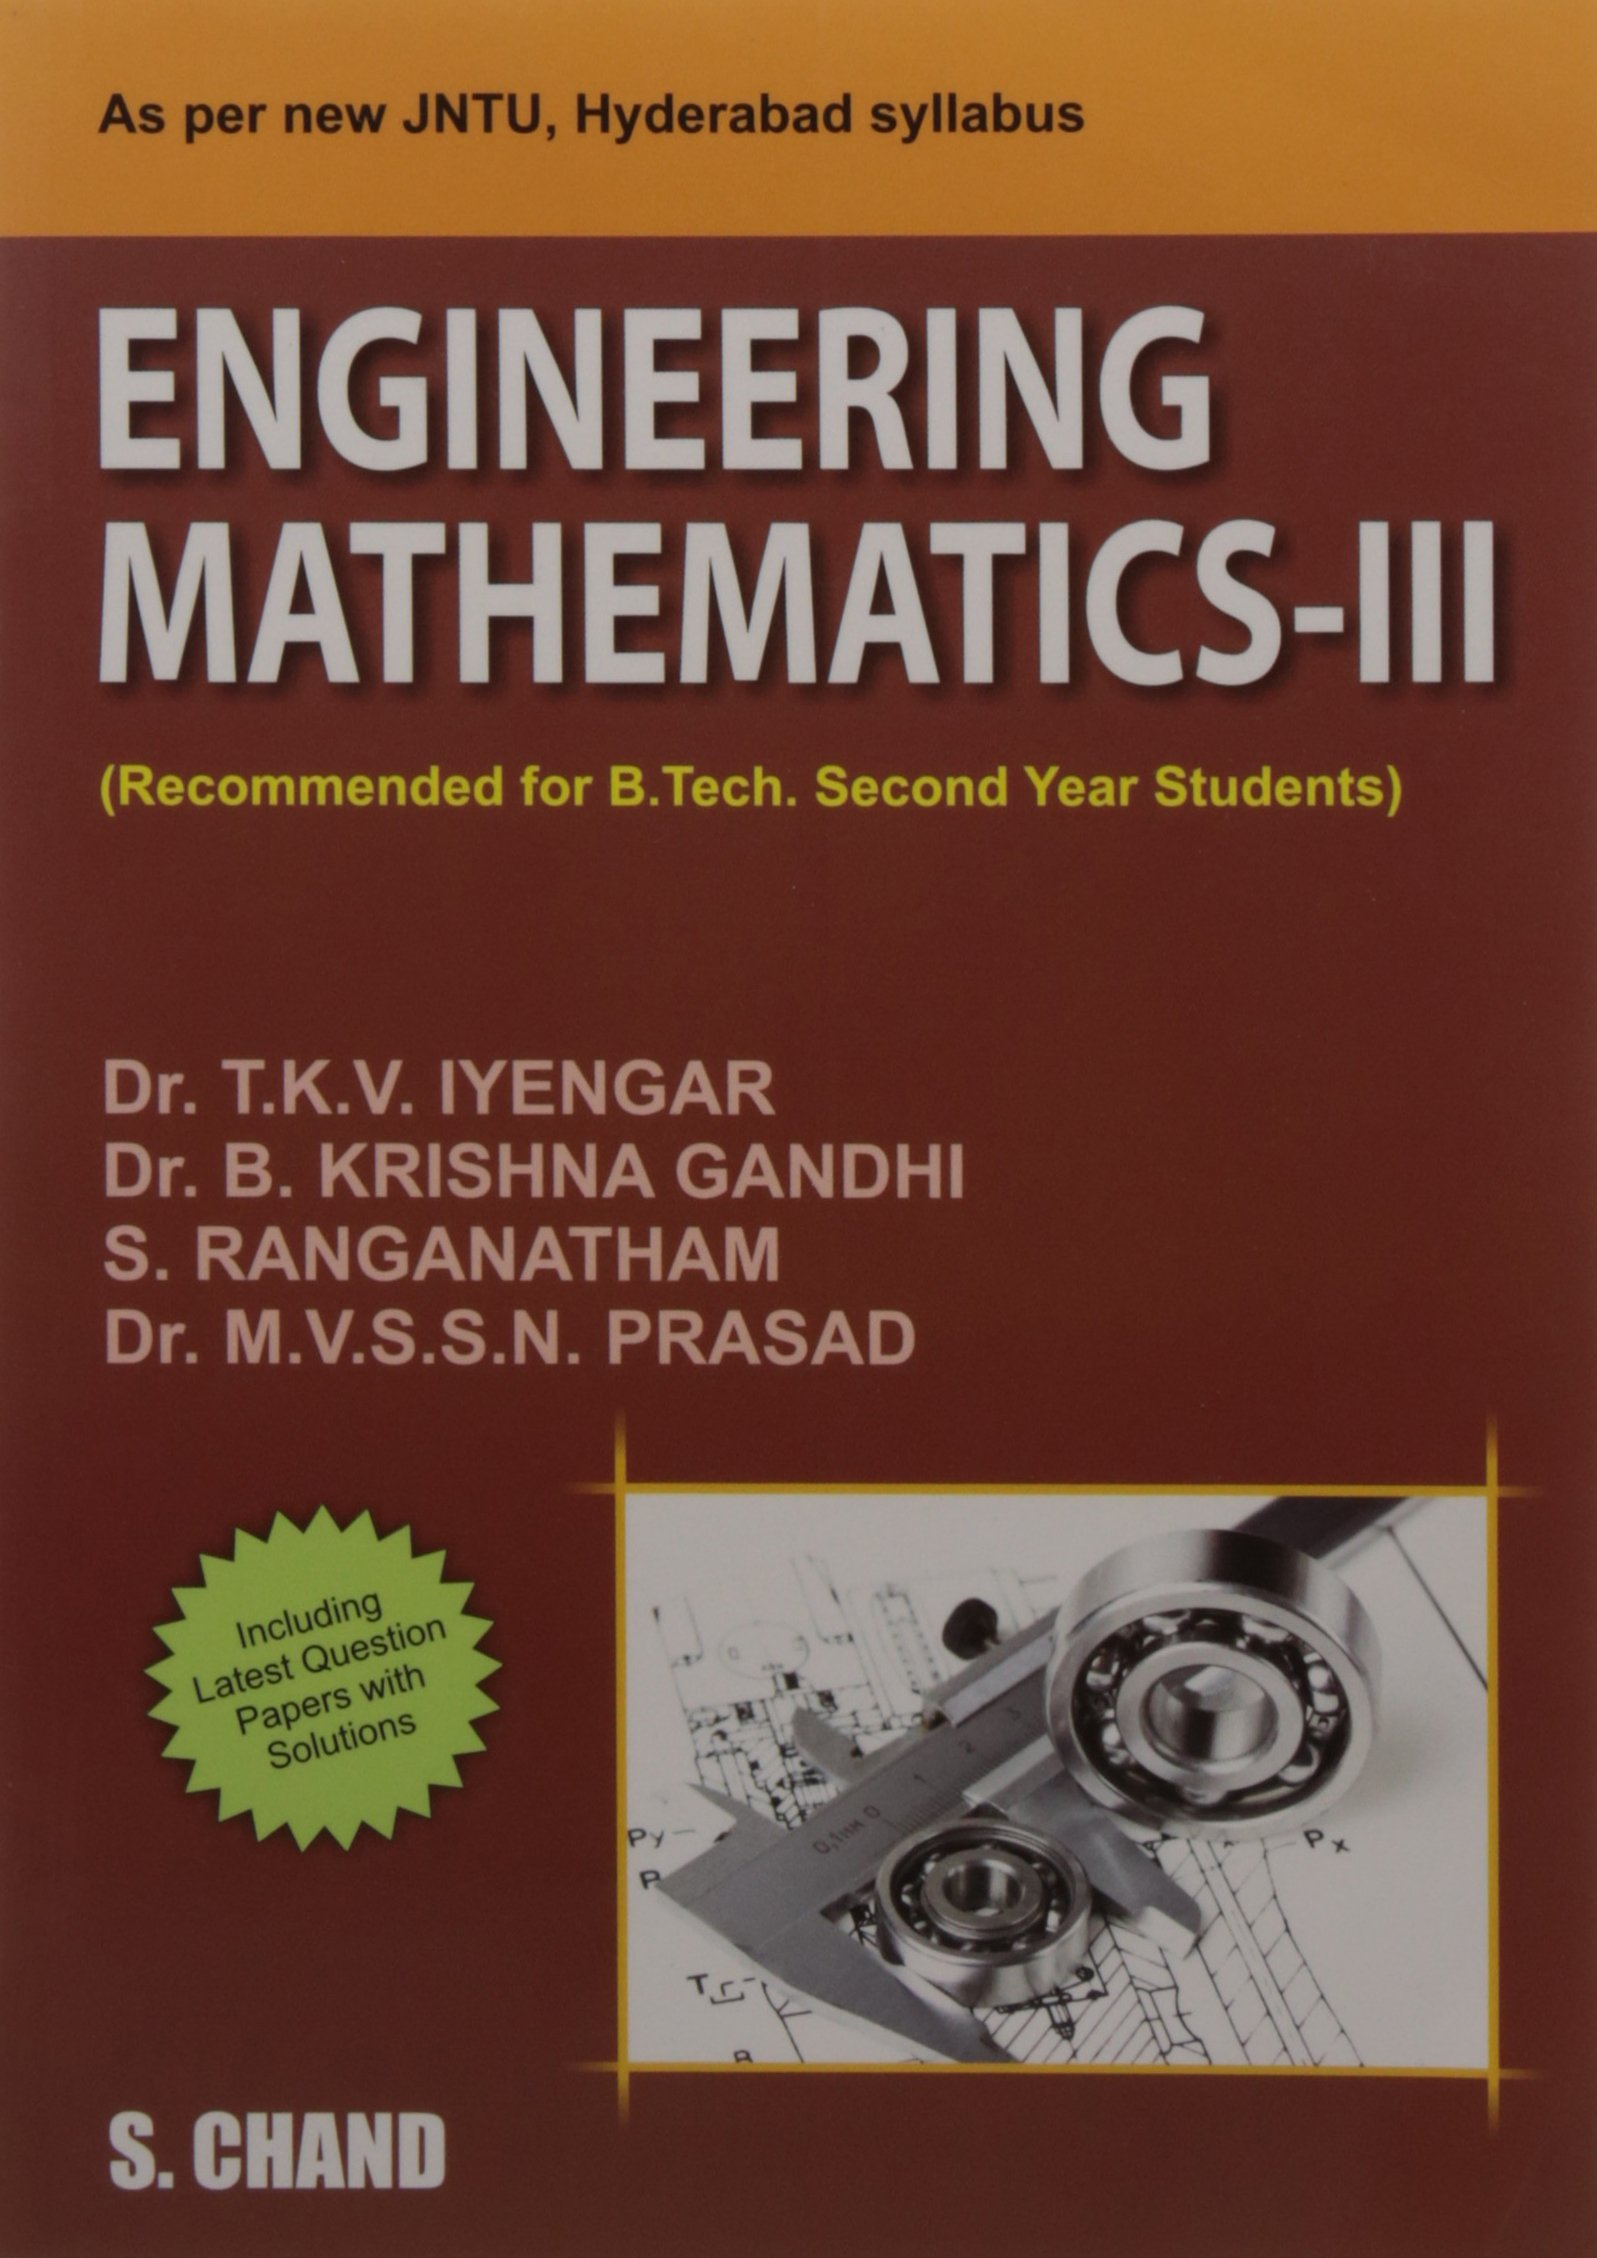 Engineering Mathematics III (JNTU) Hyderabad: 9789385401985